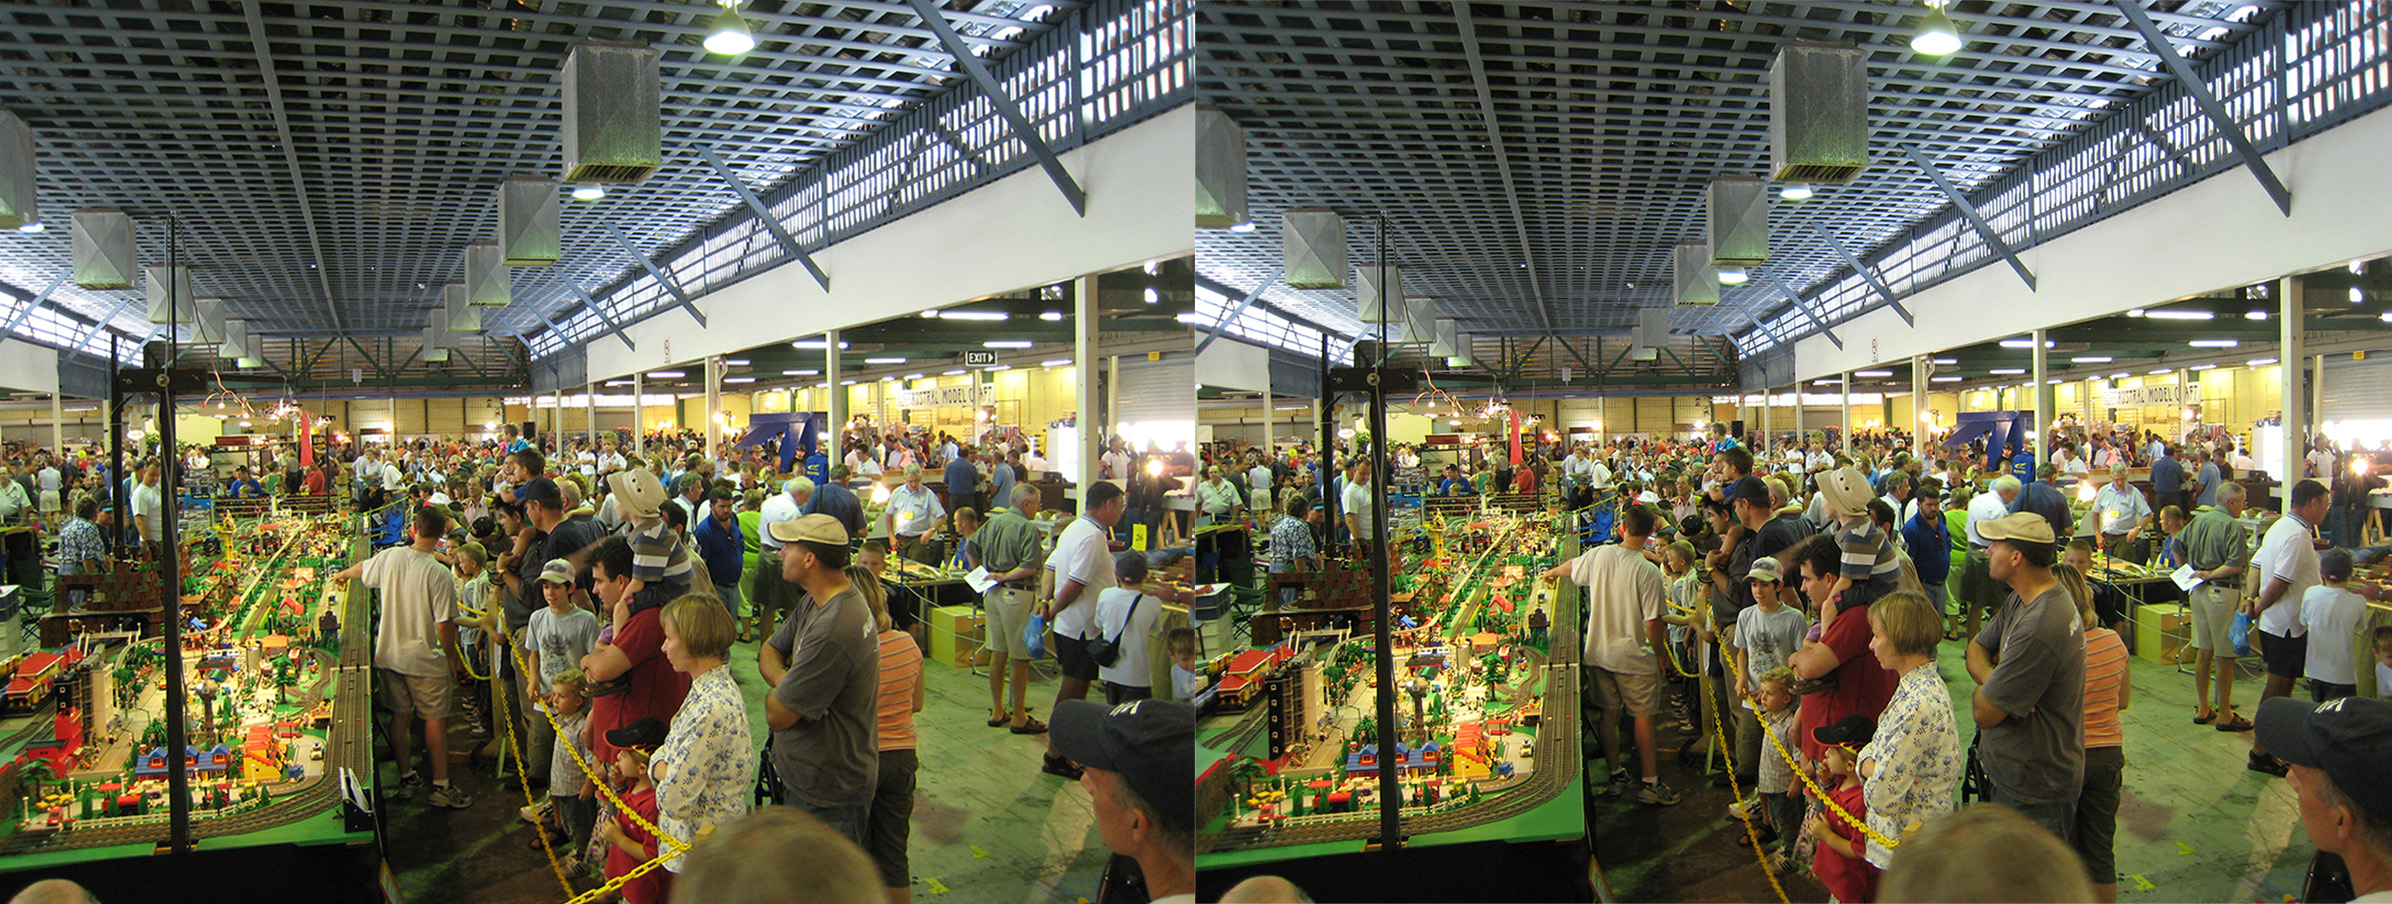 spot the difference at model train show